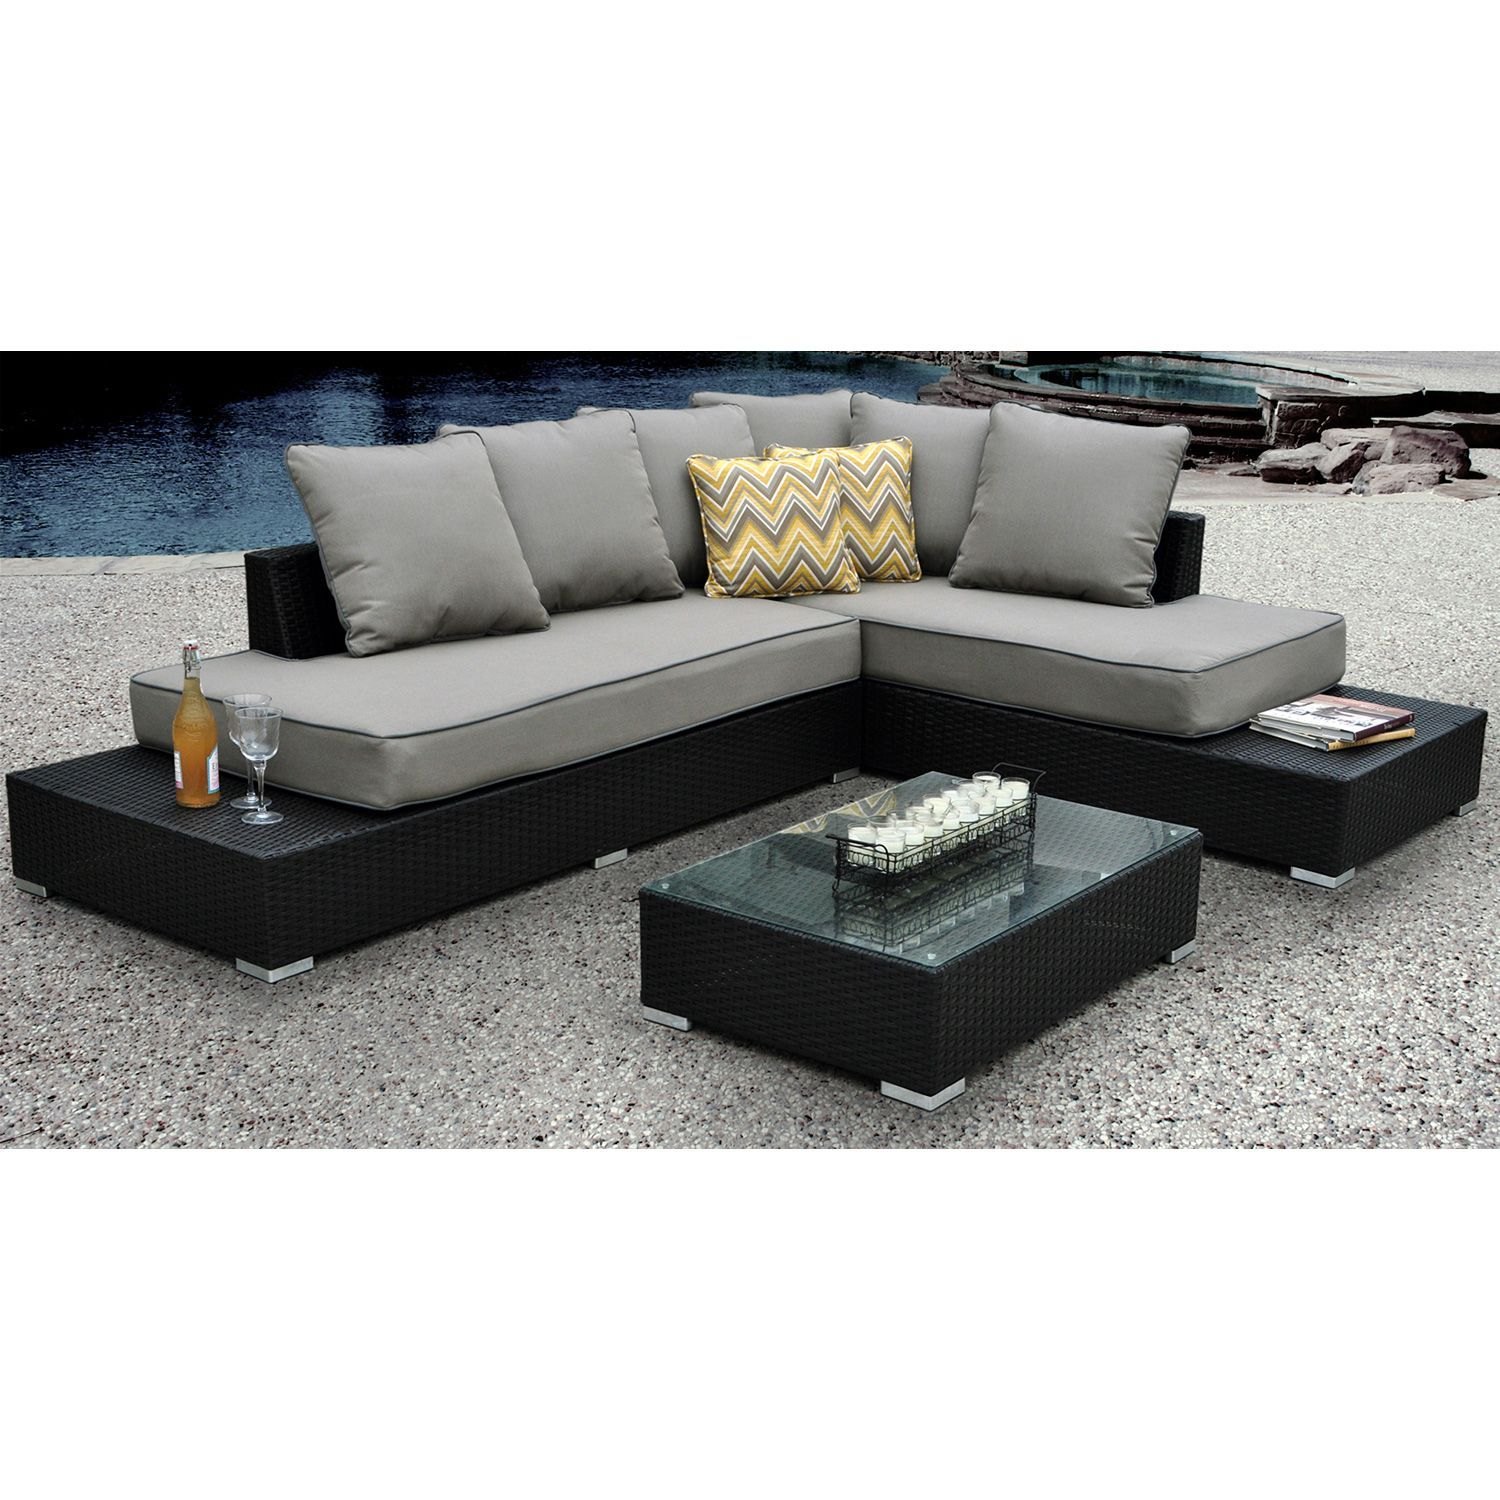 Soho Sectional With Premium Sunbrella Fabric Original Price 999